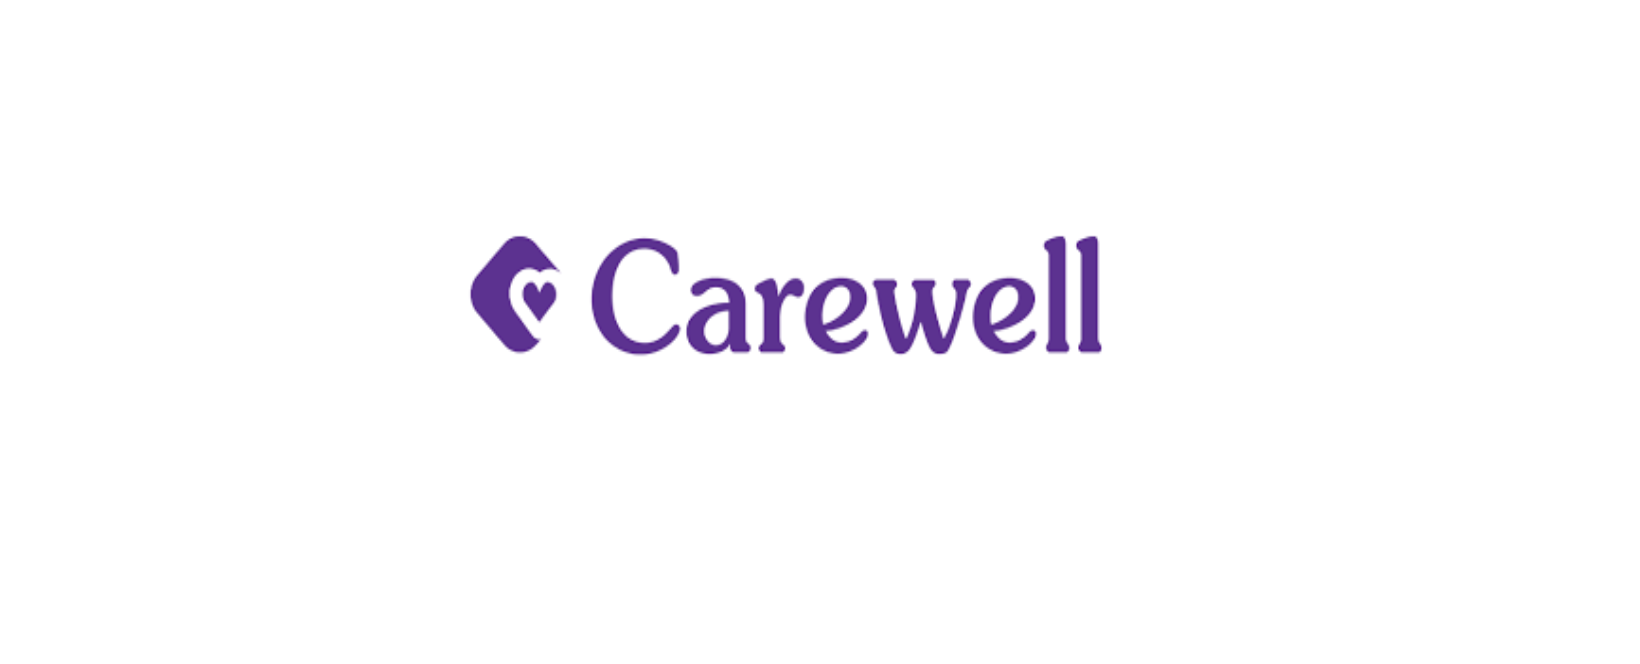 Carewell Discount Code 2021